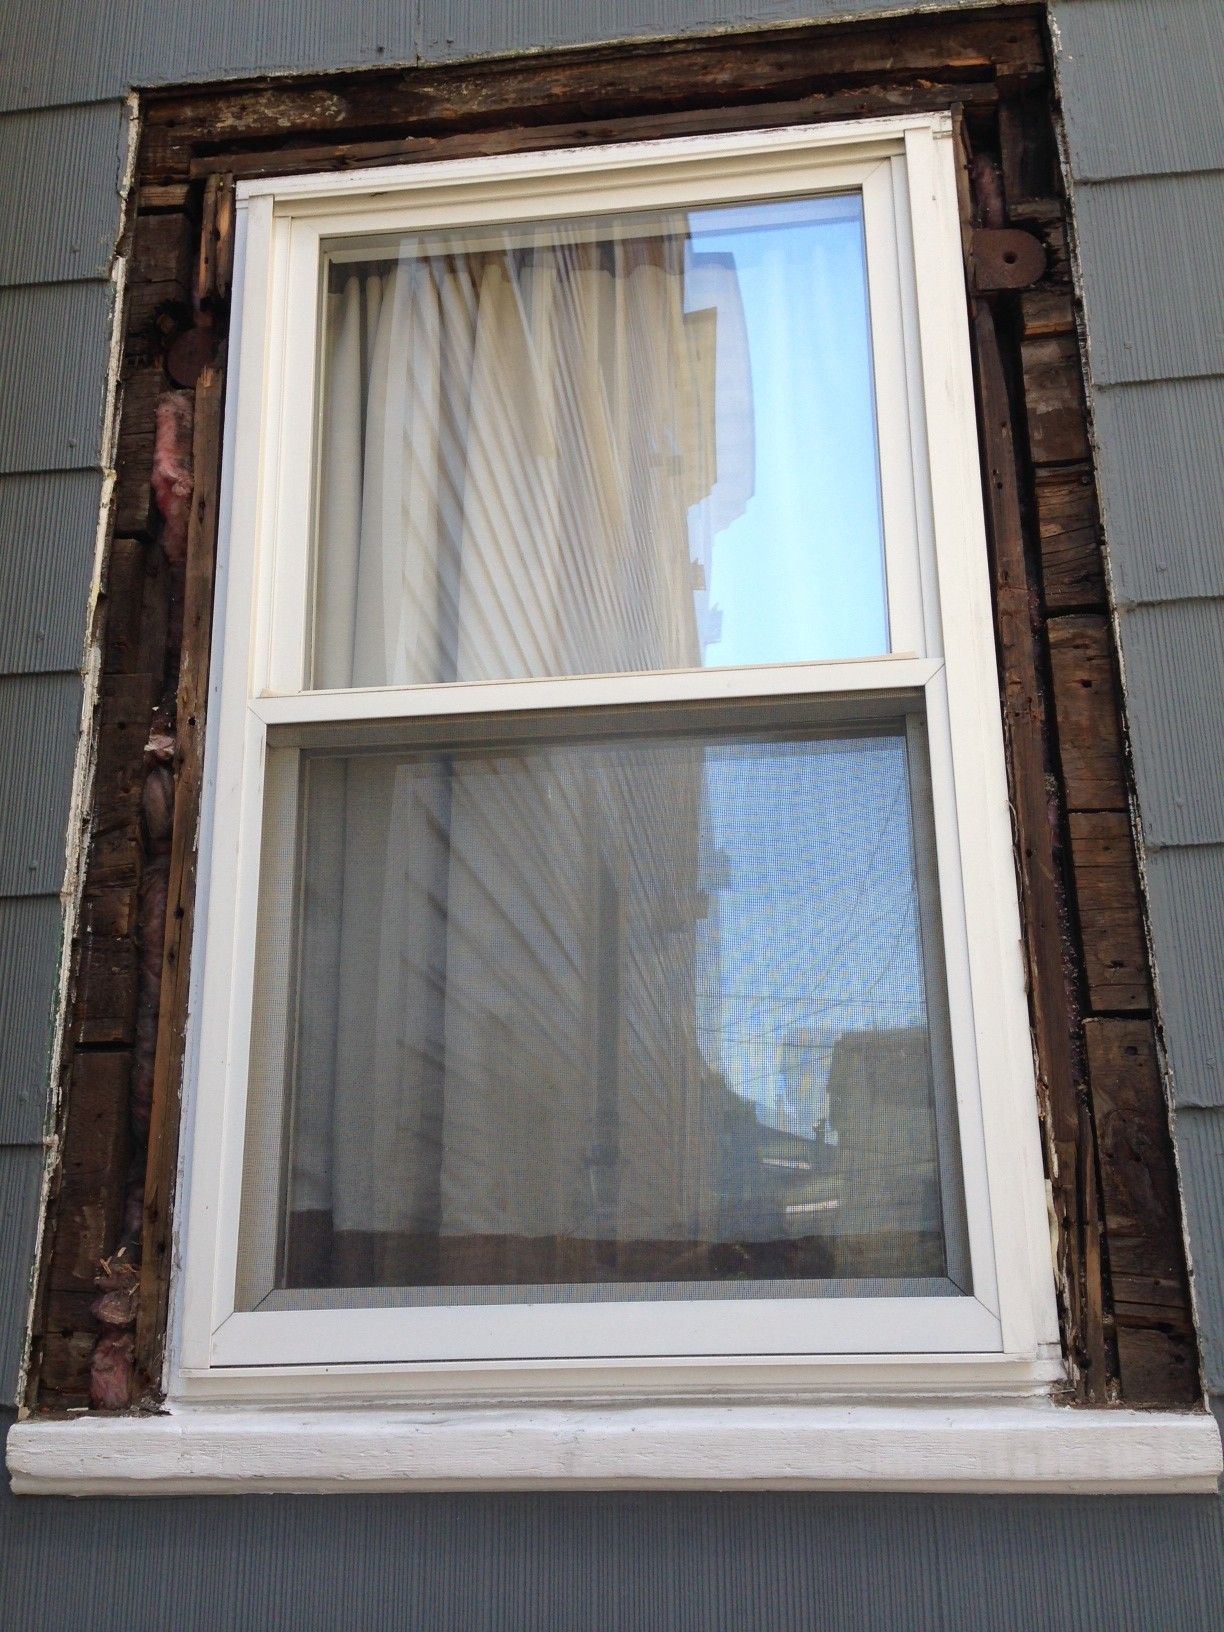 Exterior window trim - Here S How The Window Looked Without Any Trim Note The Boards As Sheathing